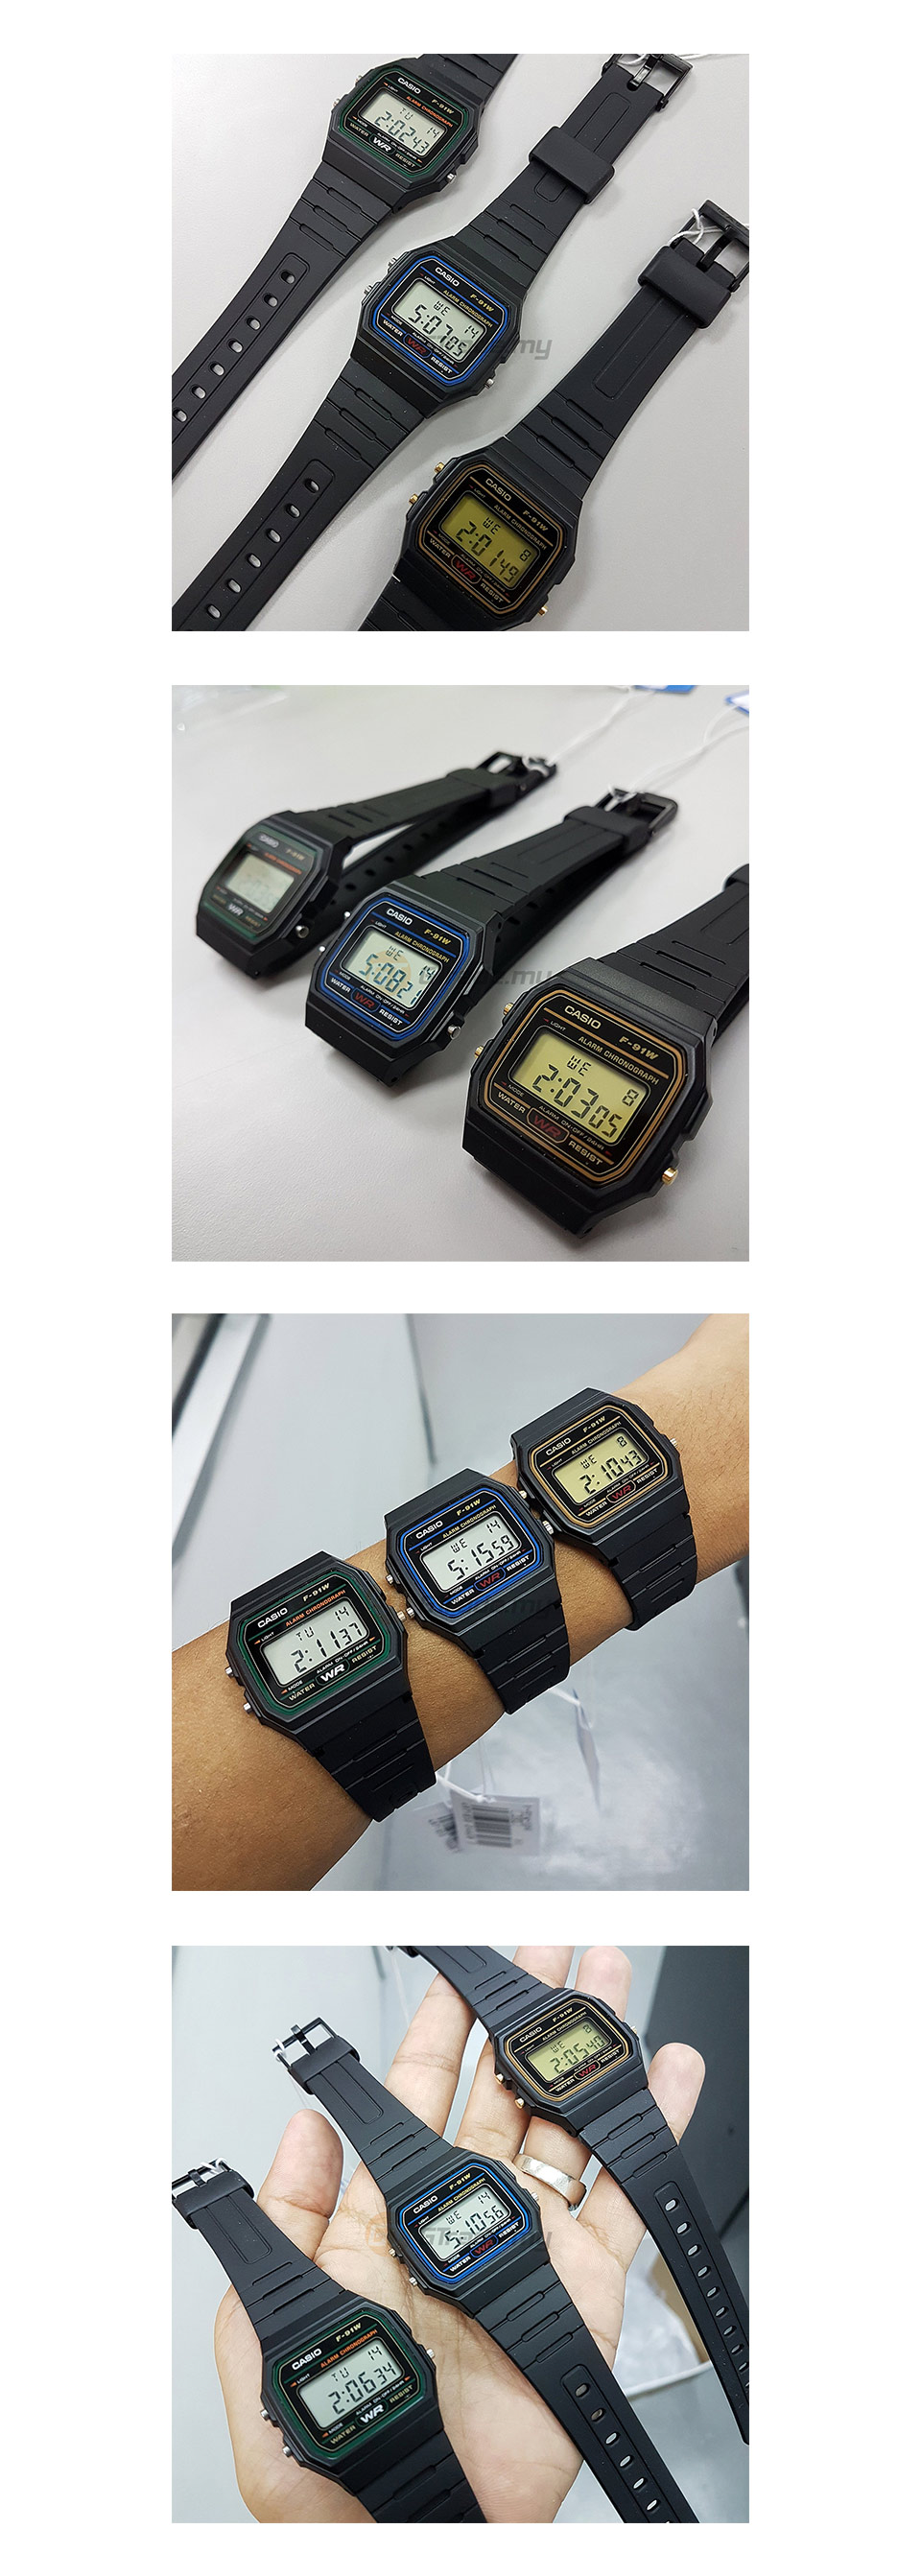 casio-classic-digital-watch-alarm-calendar-casual-f-91w-3-p